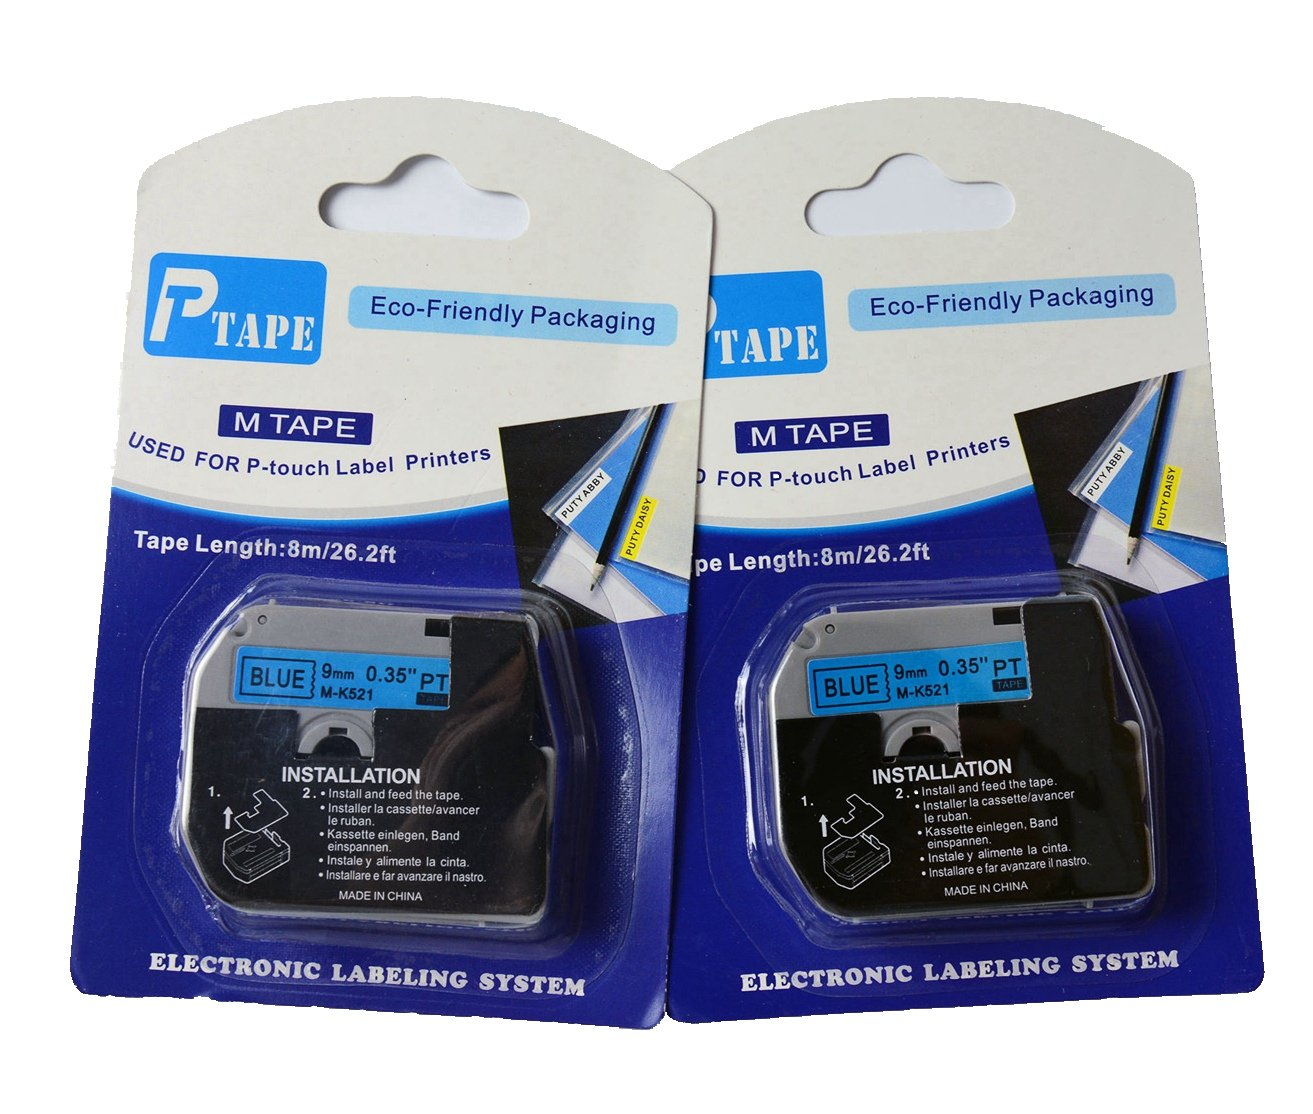 Amazon.com: 4 x Hartwii Black on Blue Label Cassette Compatible for Brother MK-521 9mm 8m Serial Label Tape (1/4 x 26